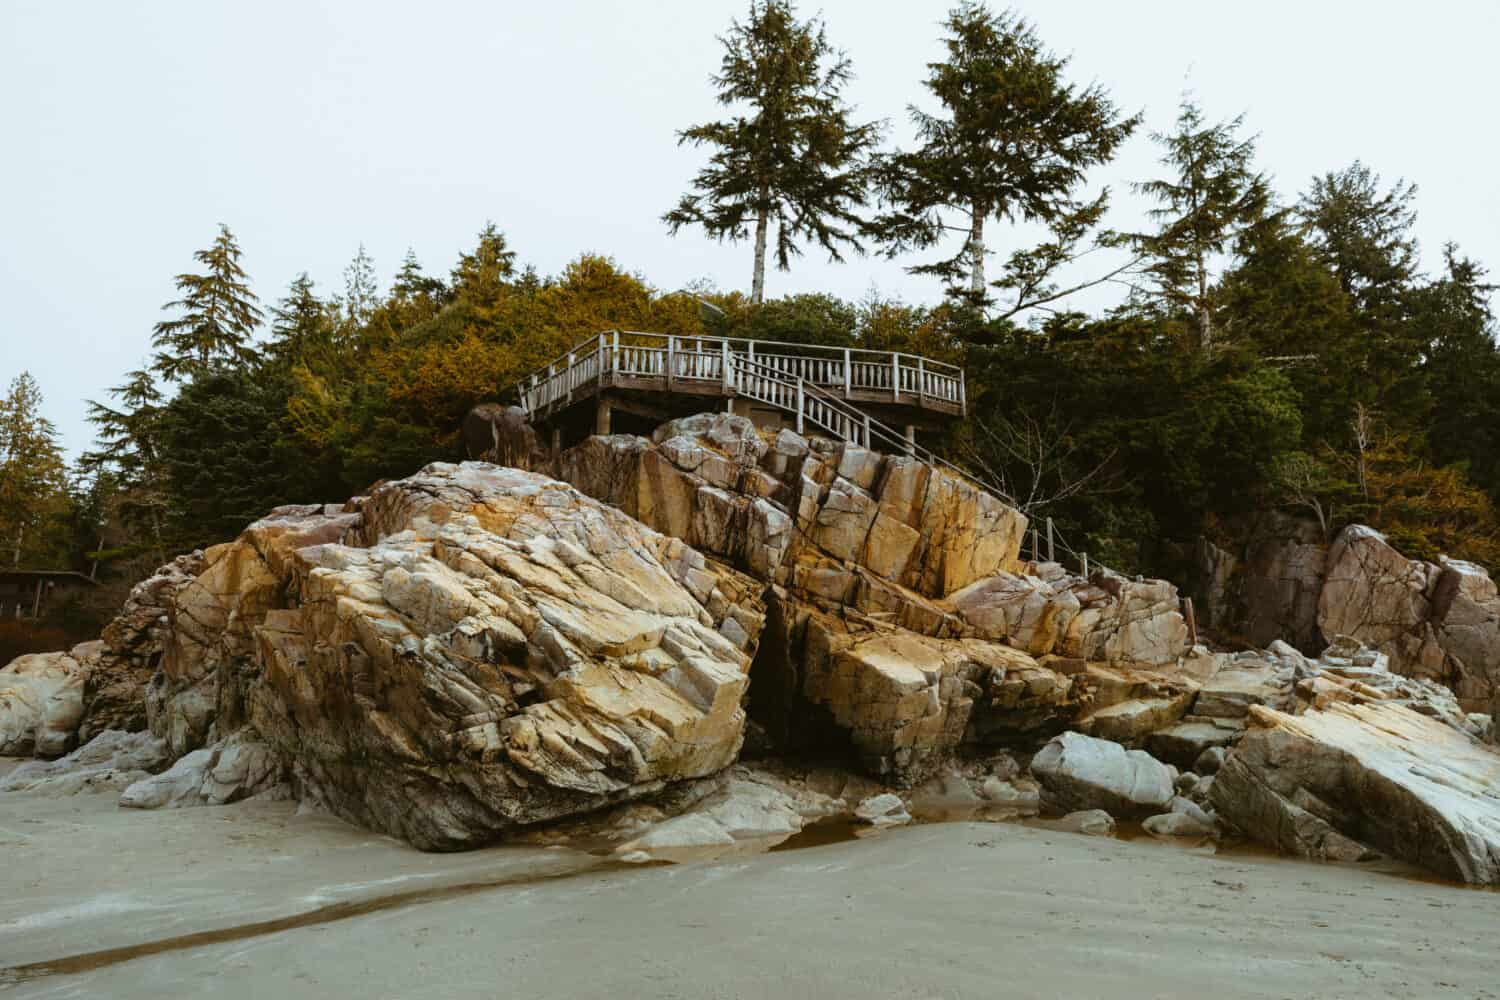 Beaches in Tofino, British Columbia